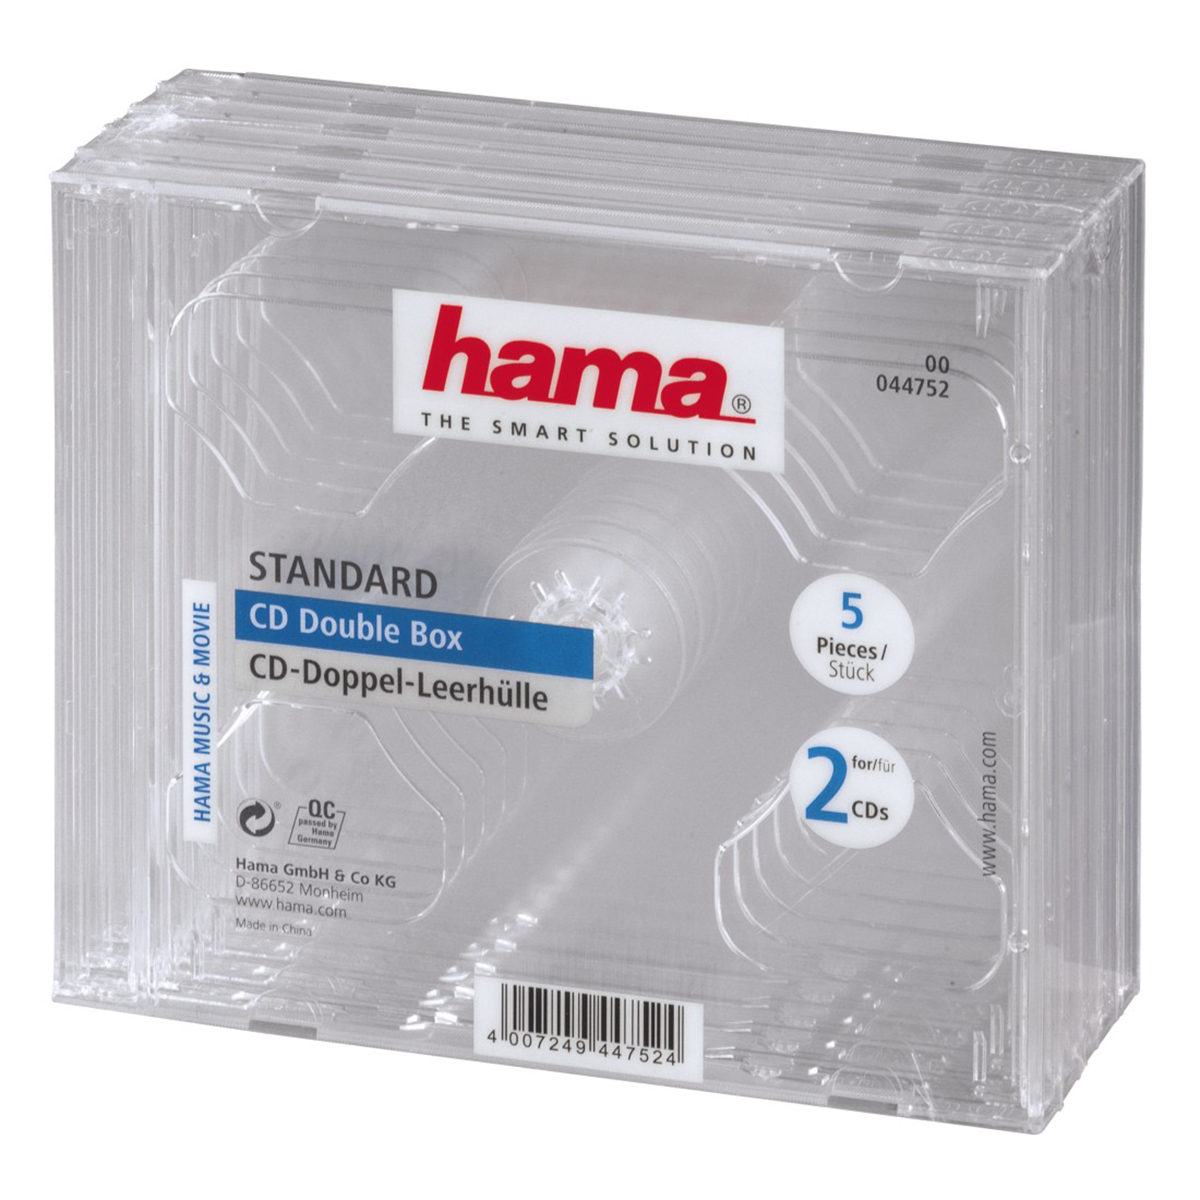 Hama CD-Double-Box     pack of 5 Transparent Jewel-Case     44752